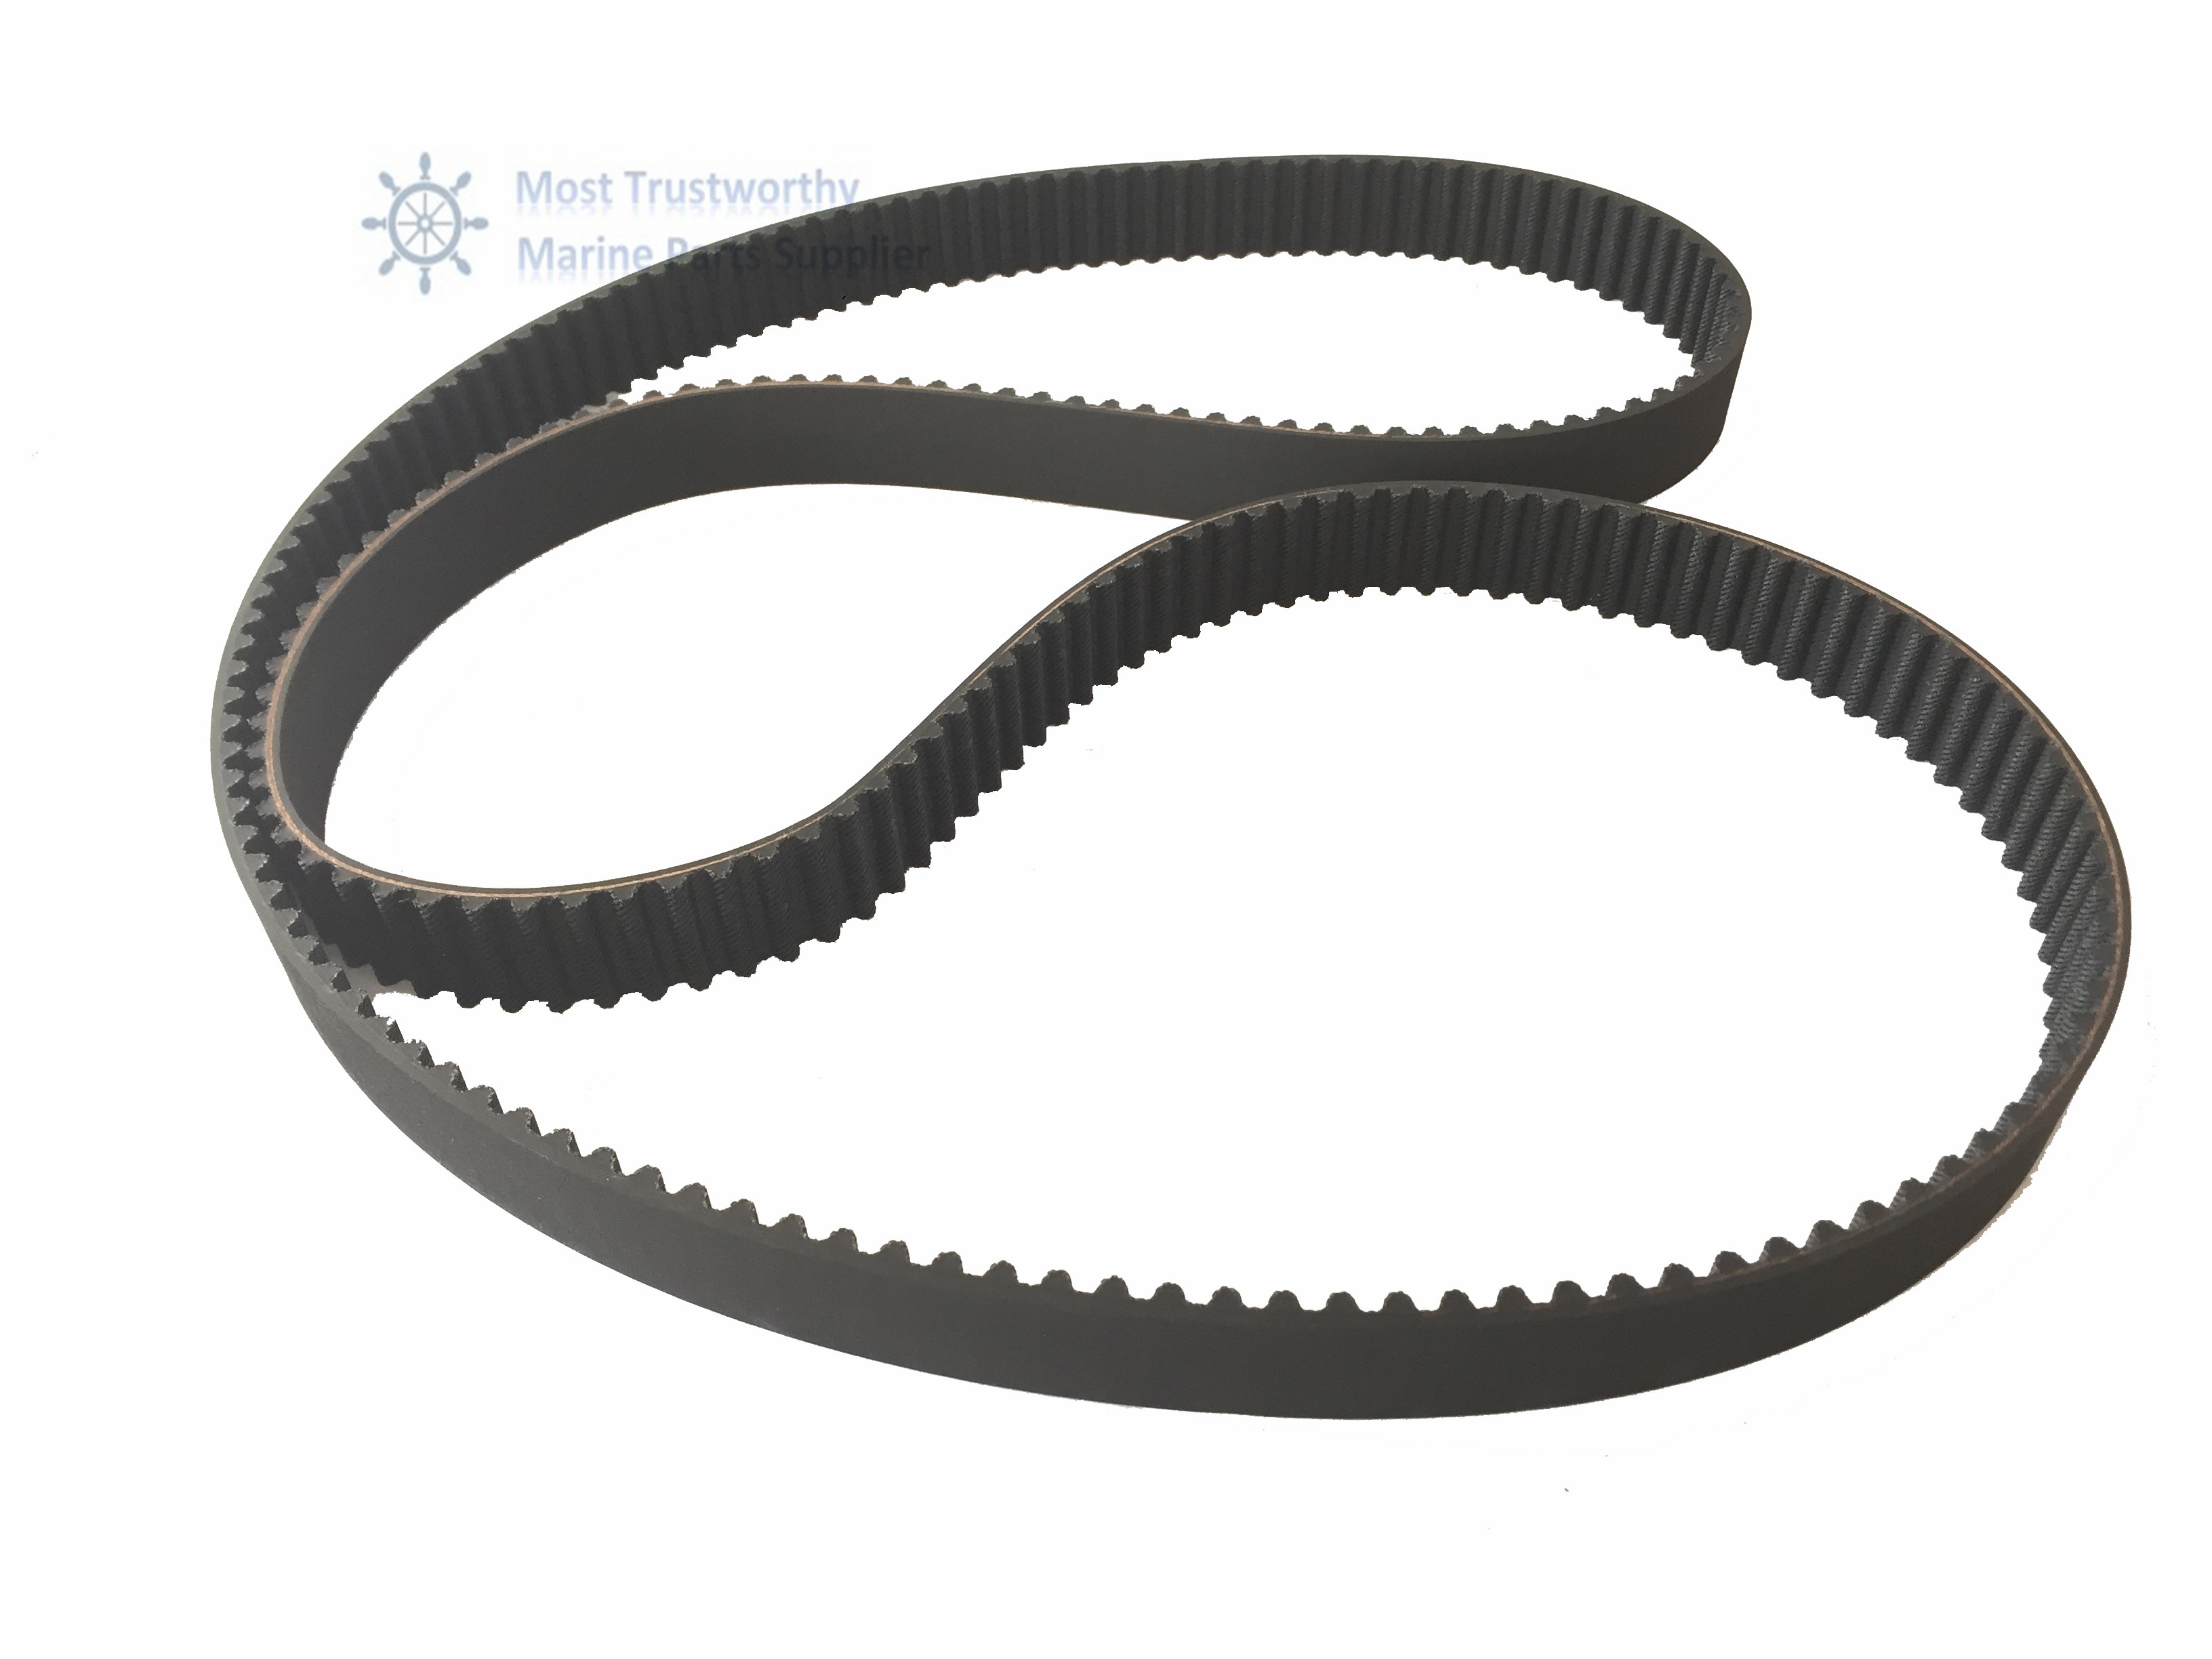 Timing Belt For Replacement Yamaha Outboard 4-Stroke 6P2-46241-02 Sierra 18-15132 225teethTiming Belt For Replacement Yamaha Outboard 4-Stroke 6P2-46241-02 Sierra 18-15132 225teeth